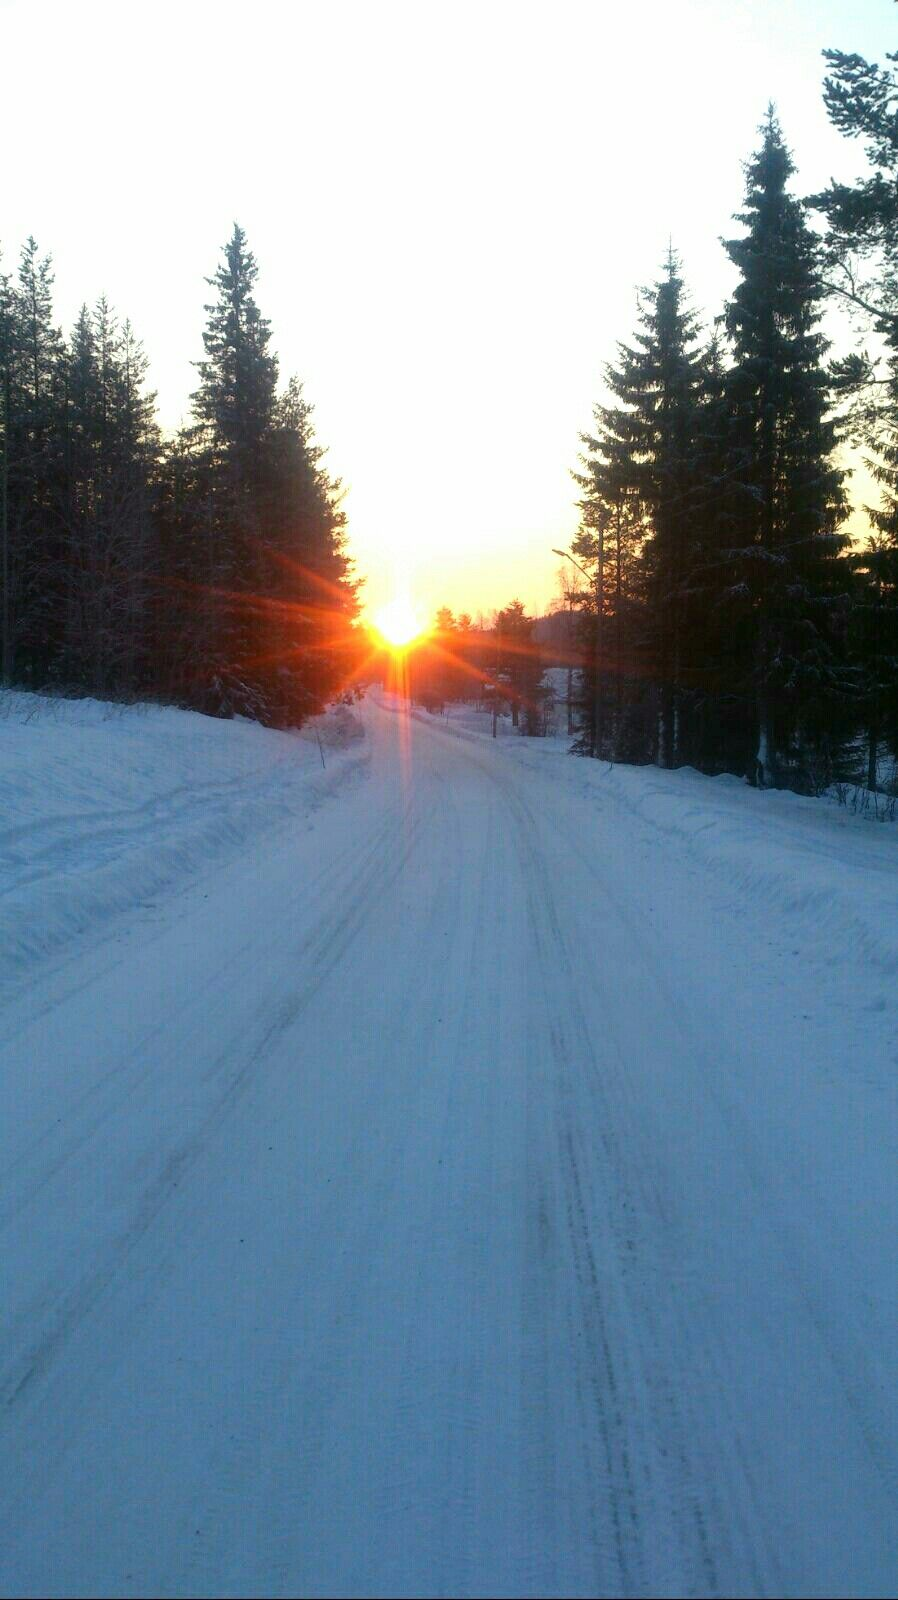 Winter road in the north of Sweden.